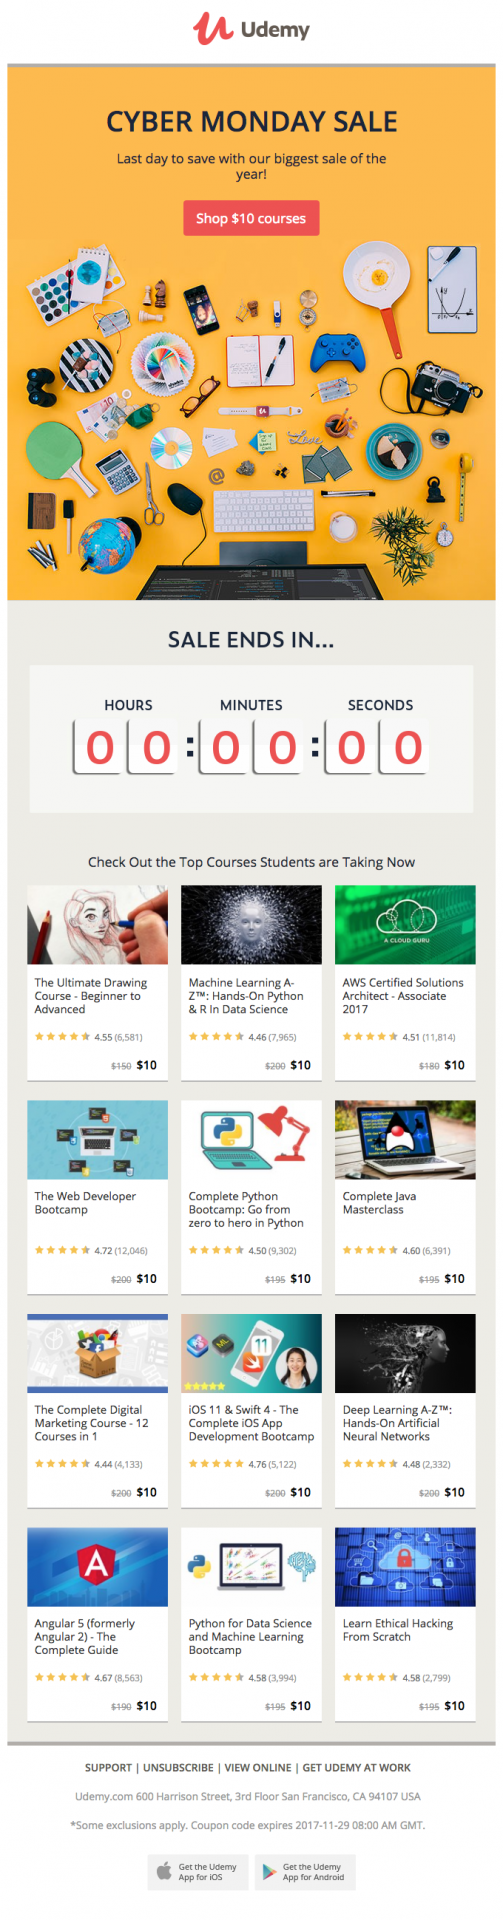 Udemy Cyber Monday email shows shoppers the different skills they can learn through their sale